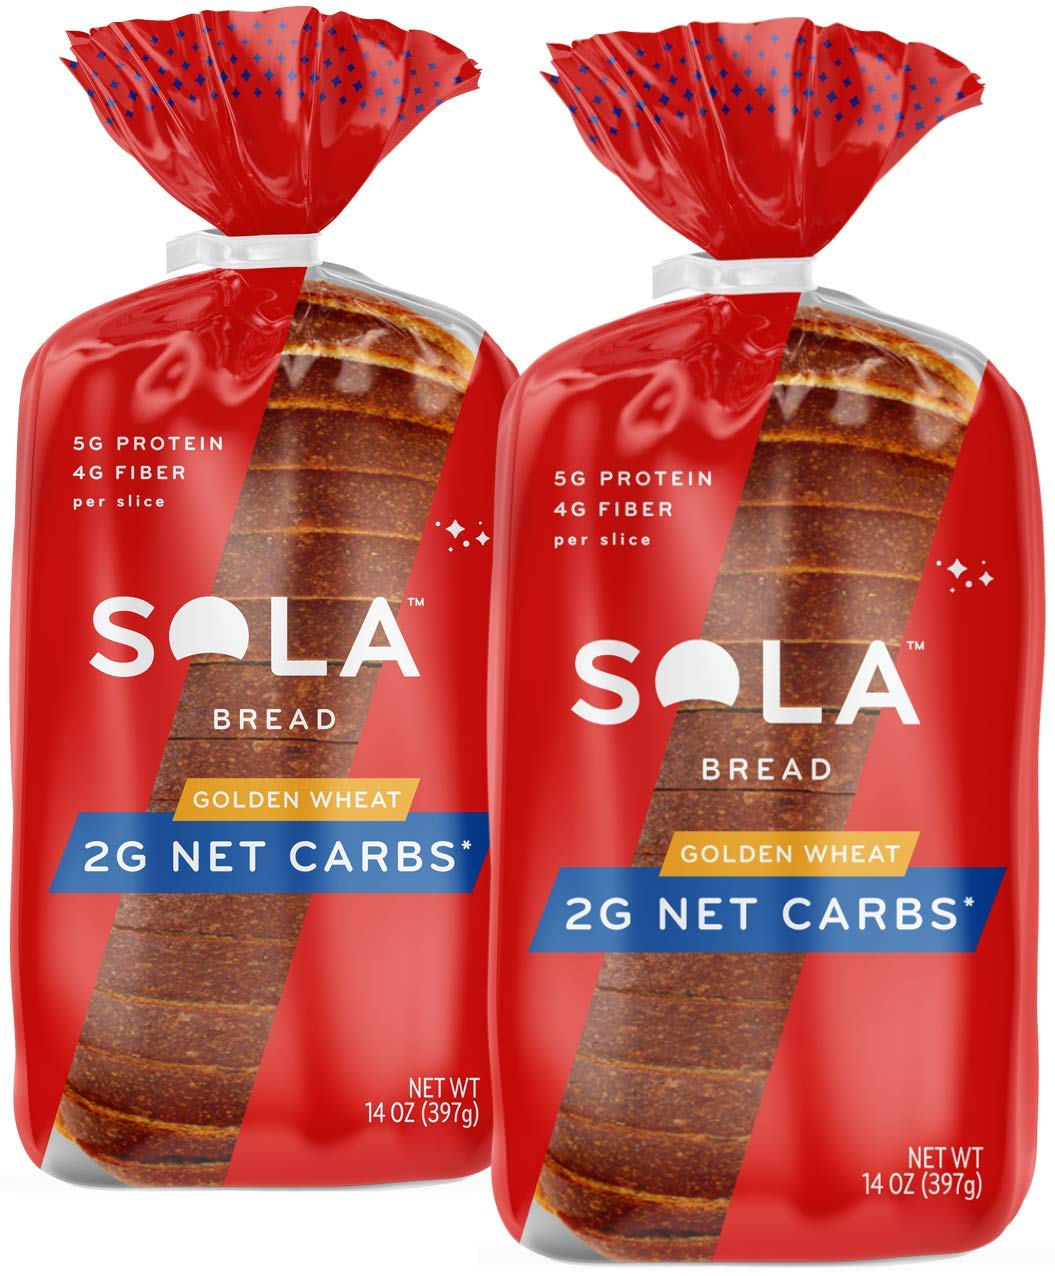 Sola Golden Wheat Bread – Low Carb, Low Calorie, Reduced Sugar, Plant Based, 5g of Protein & 4g of Fiber Per Slice – 14 OZ Loaf of Sandwich Bread (Pack of 2)